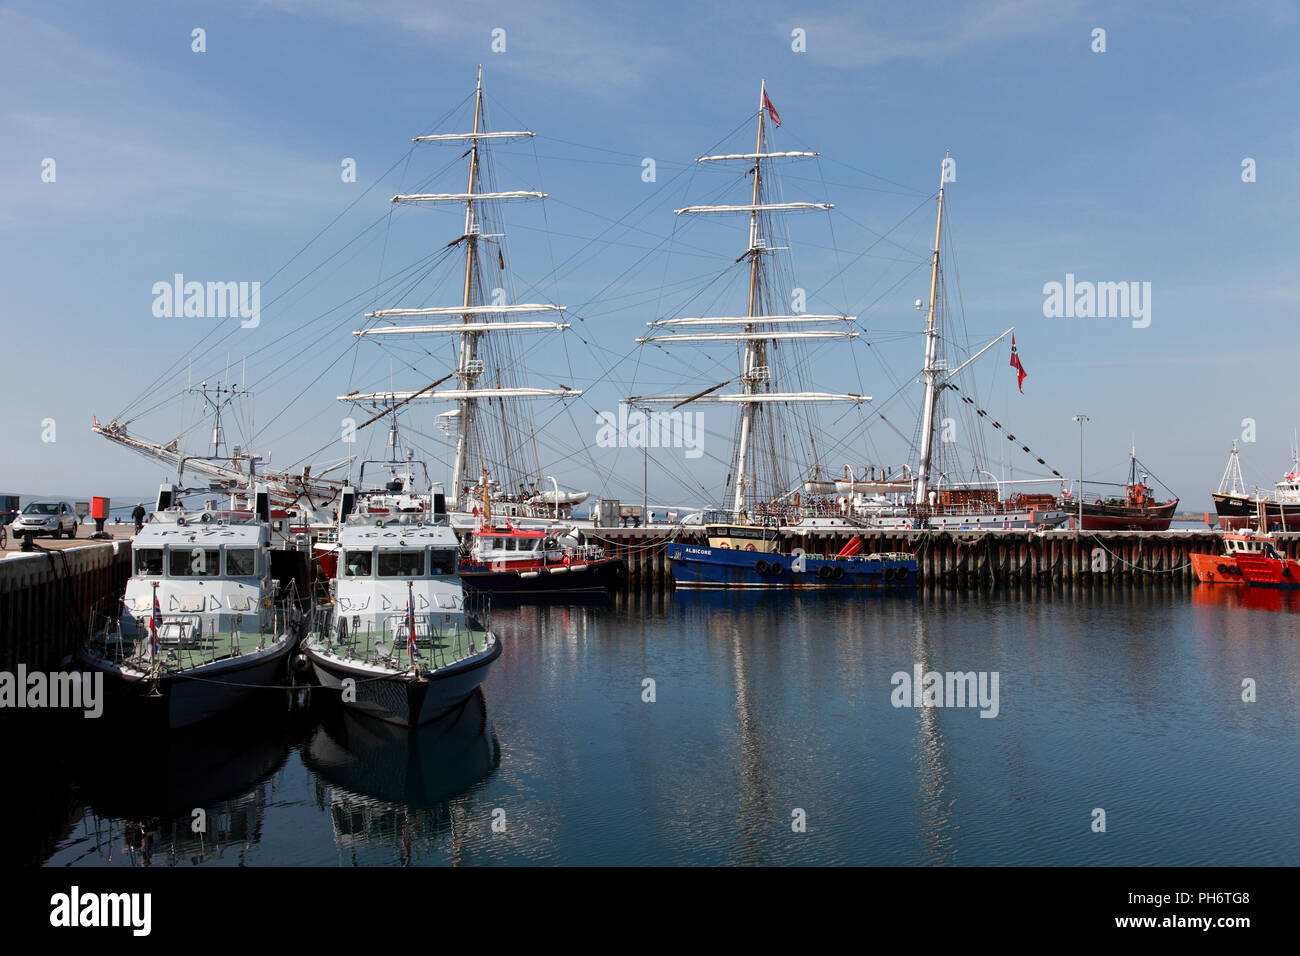 Boats in Kirkwall harbour, including fast training boats, fishing boats and a three-masted tall ship, Orkney, Scotland - Stock Image